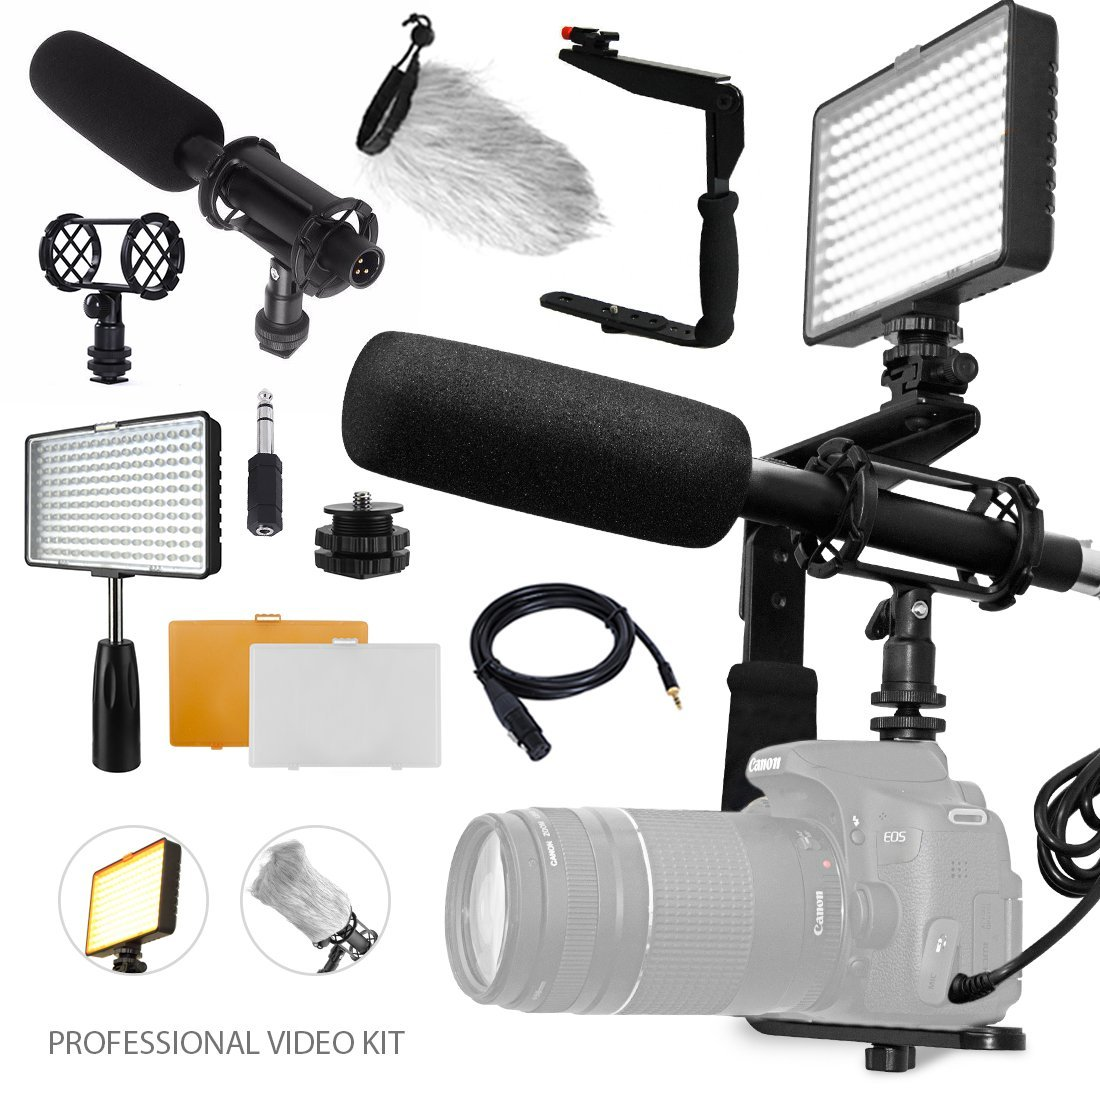 Professional Studio Video 160 LED Light for HD Quality Videography w/Pro Broadcast-Quality Interview Condenser Shotgun Microphone + 180 Degree Quick Flip Rotating Flash Bracket by Photo Savings